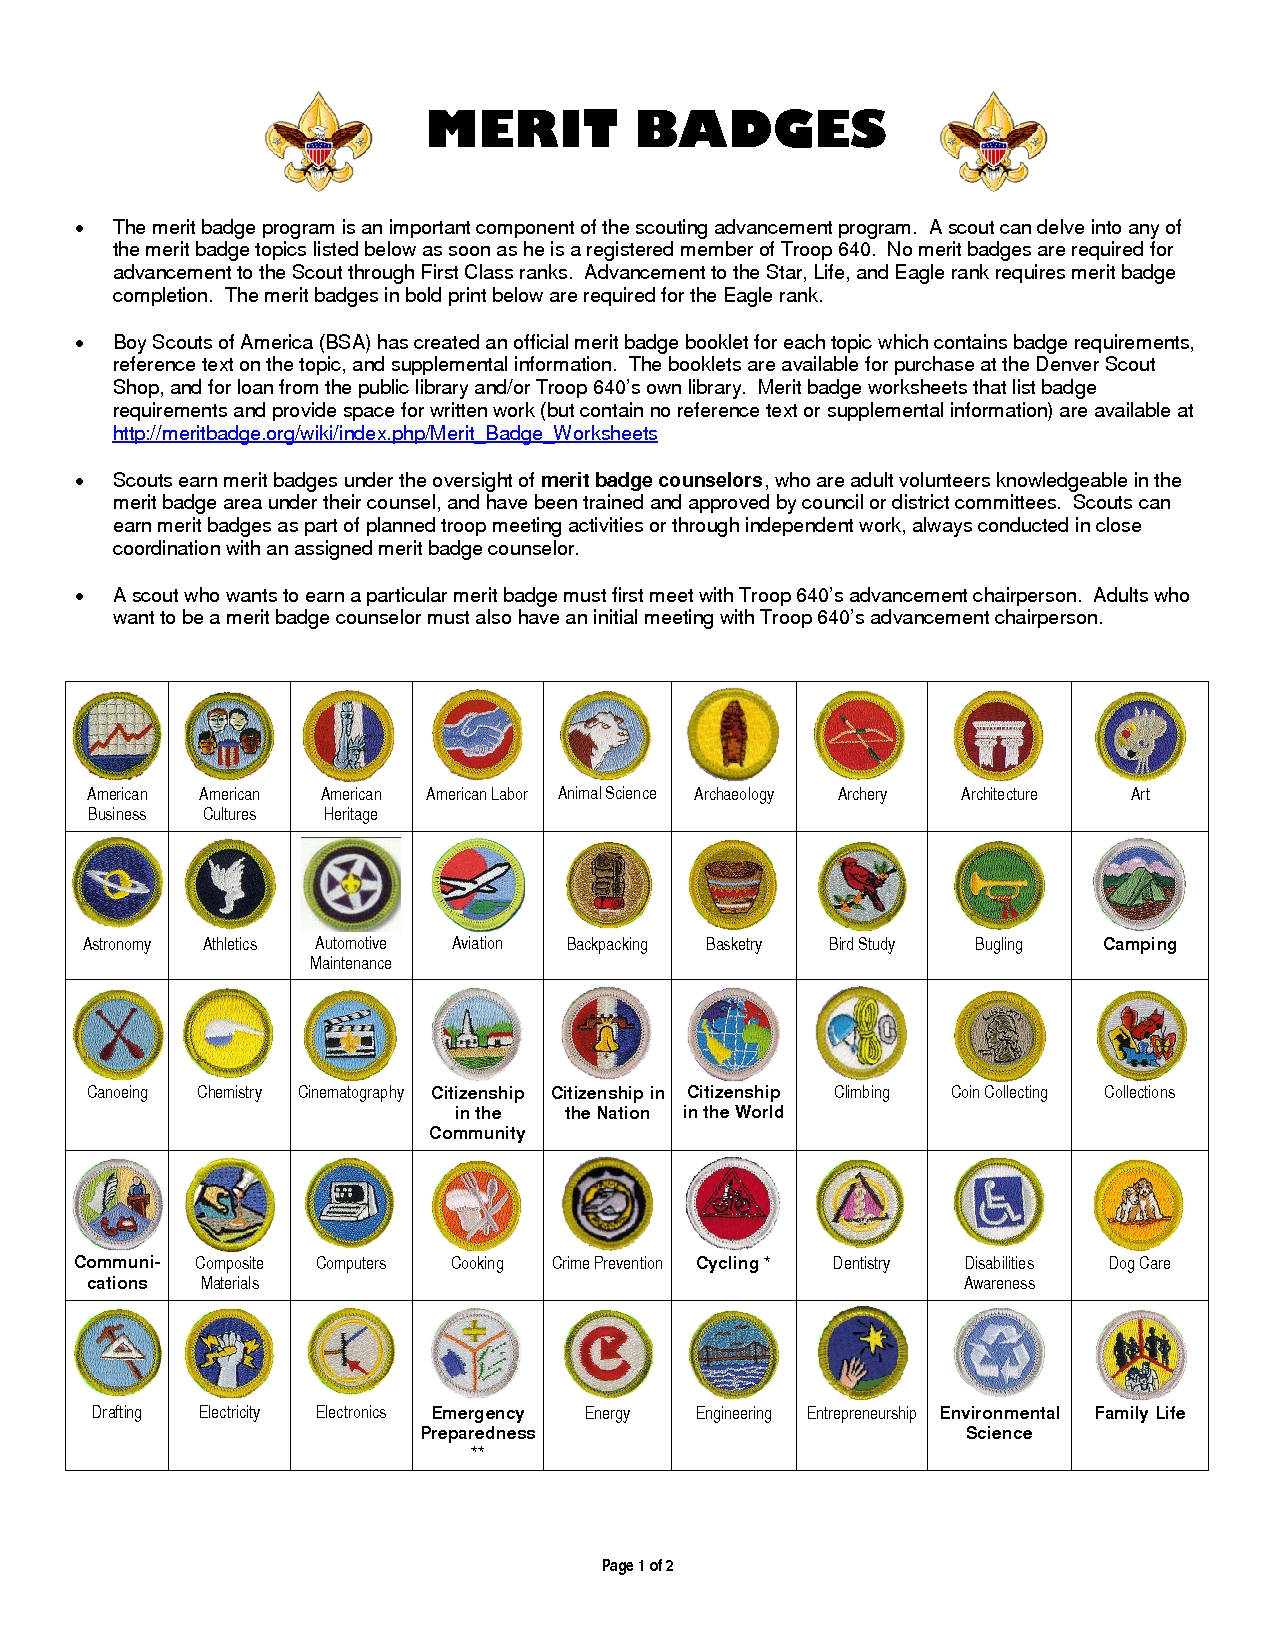 10 Gorgeous Family Life Merit Badge Project Ideas